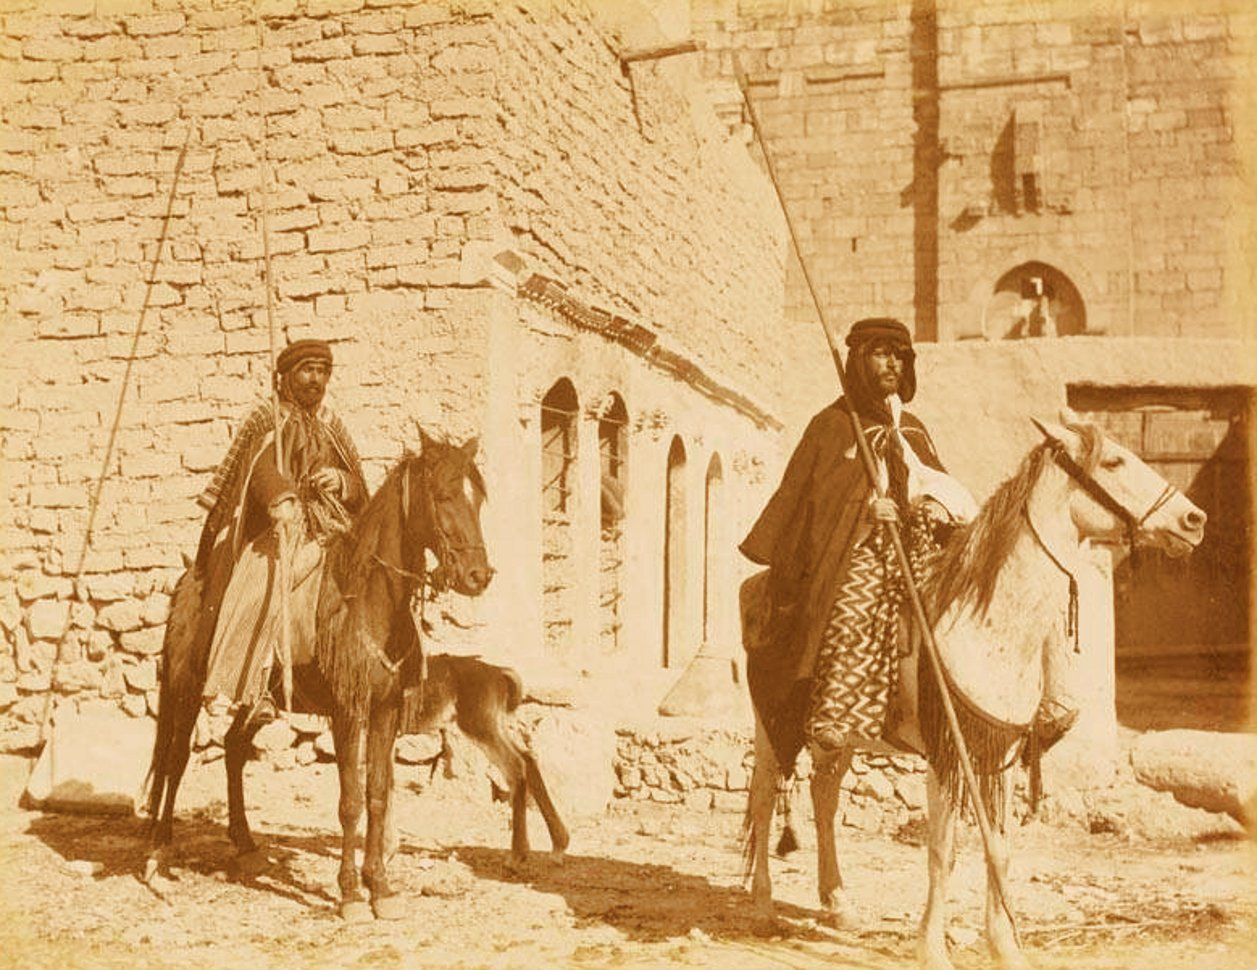 Nablus - نابلس : NABLUS - Late 19th, early 20th c. 75 - Arabs of northern Palestine on horseback (Possibly around the Nablus area)